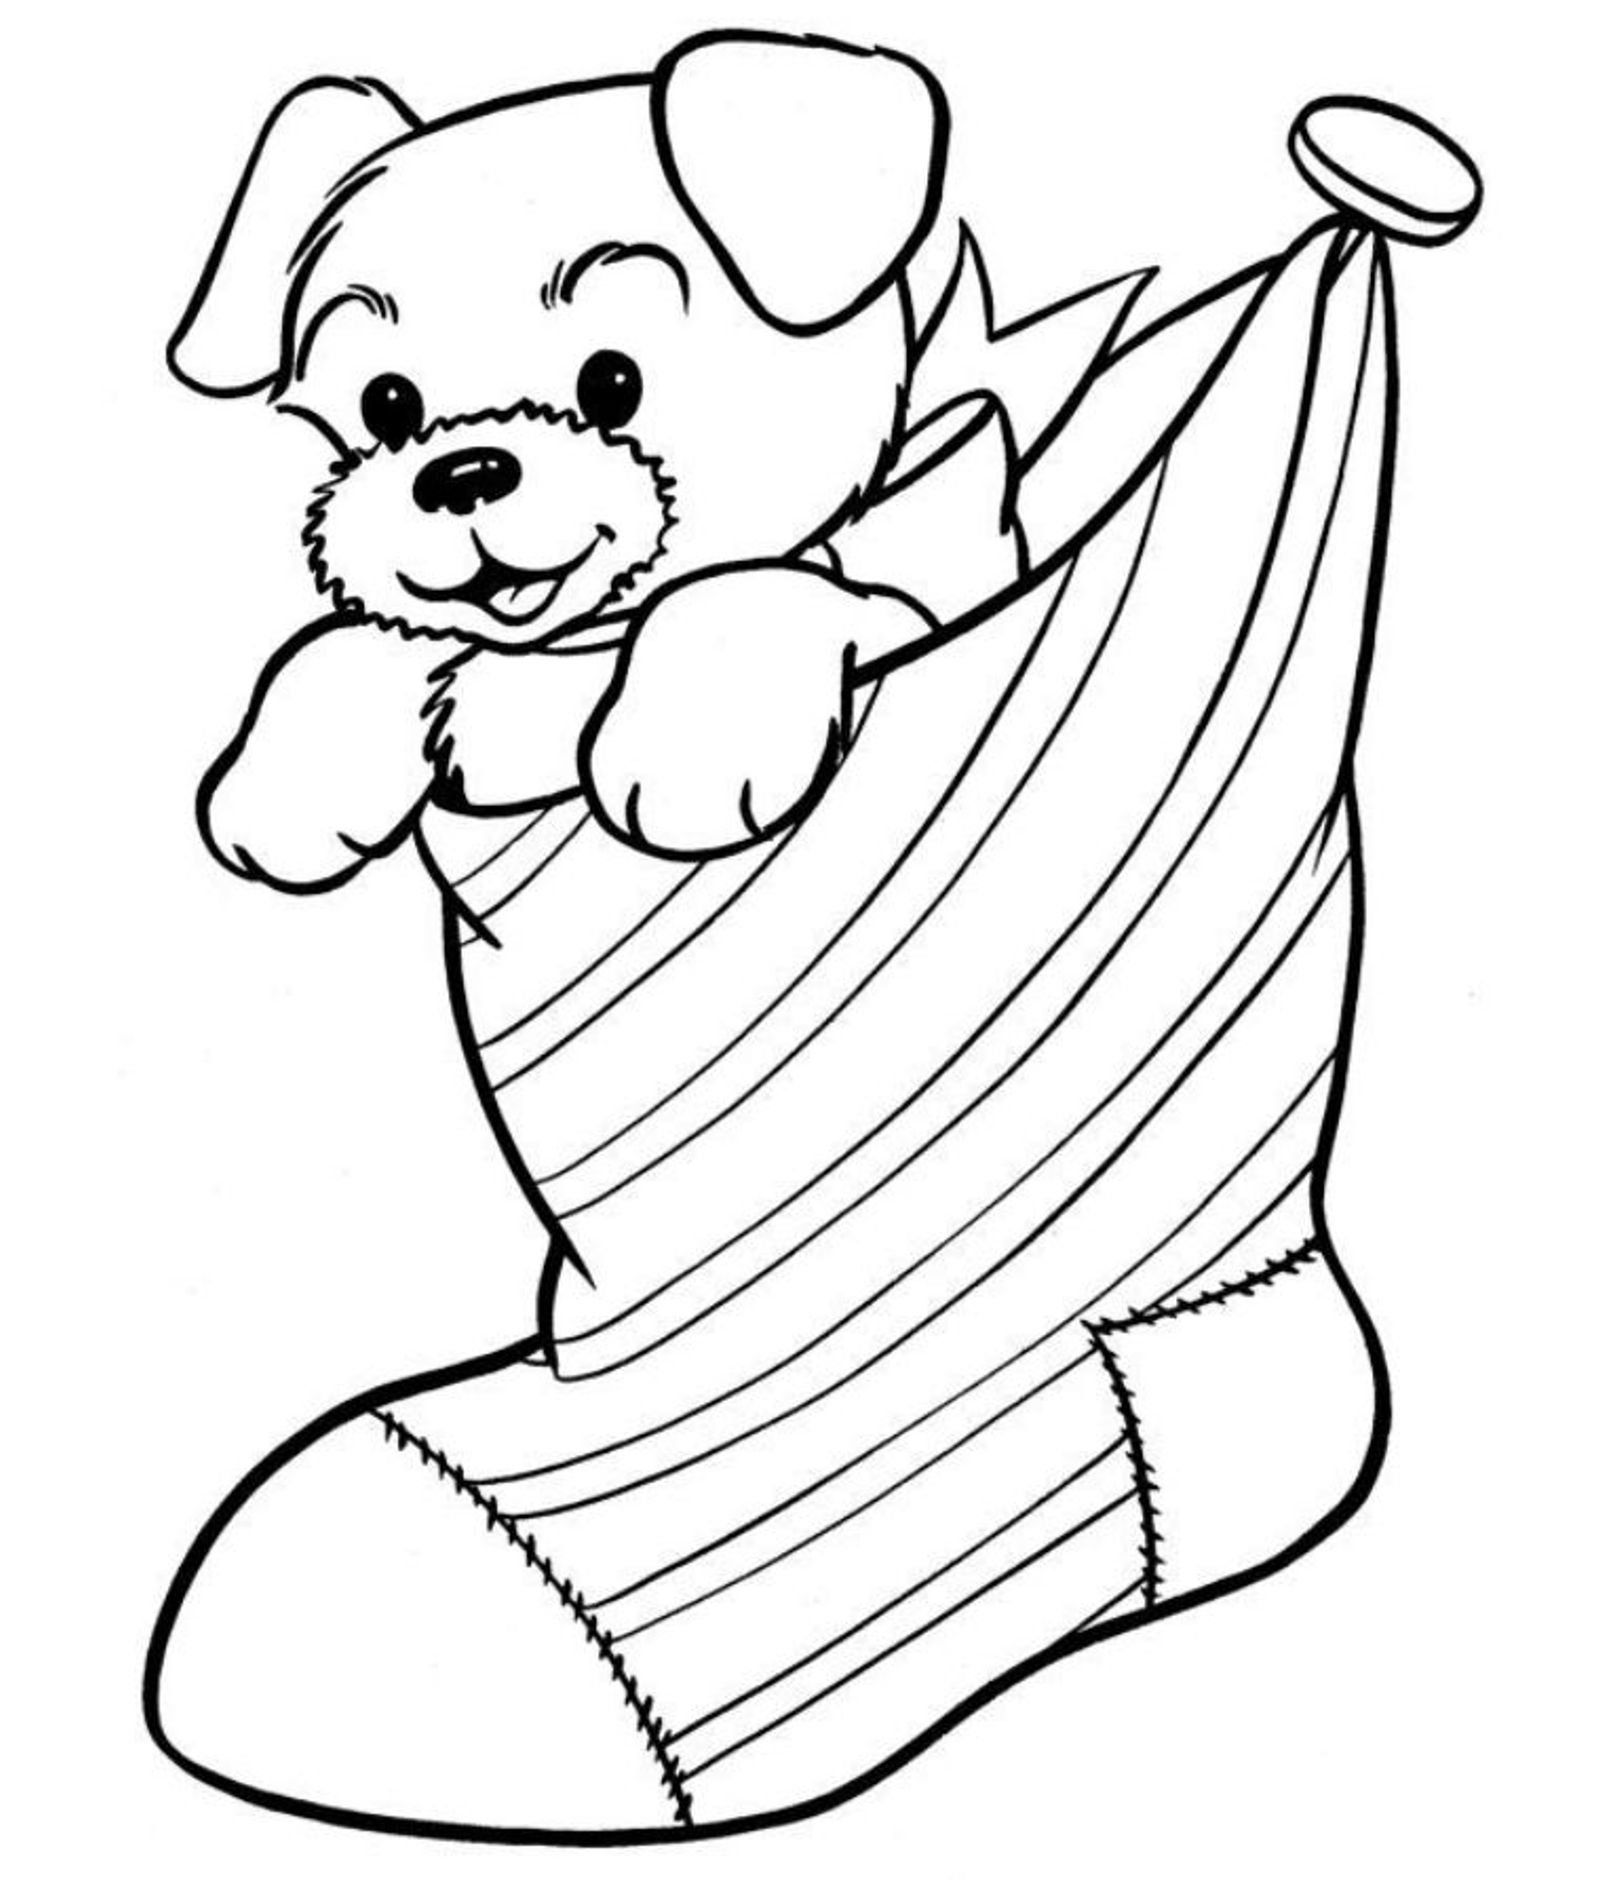 - Christmas Coloring, Puppy In The Stocking Free Coloring Pages For